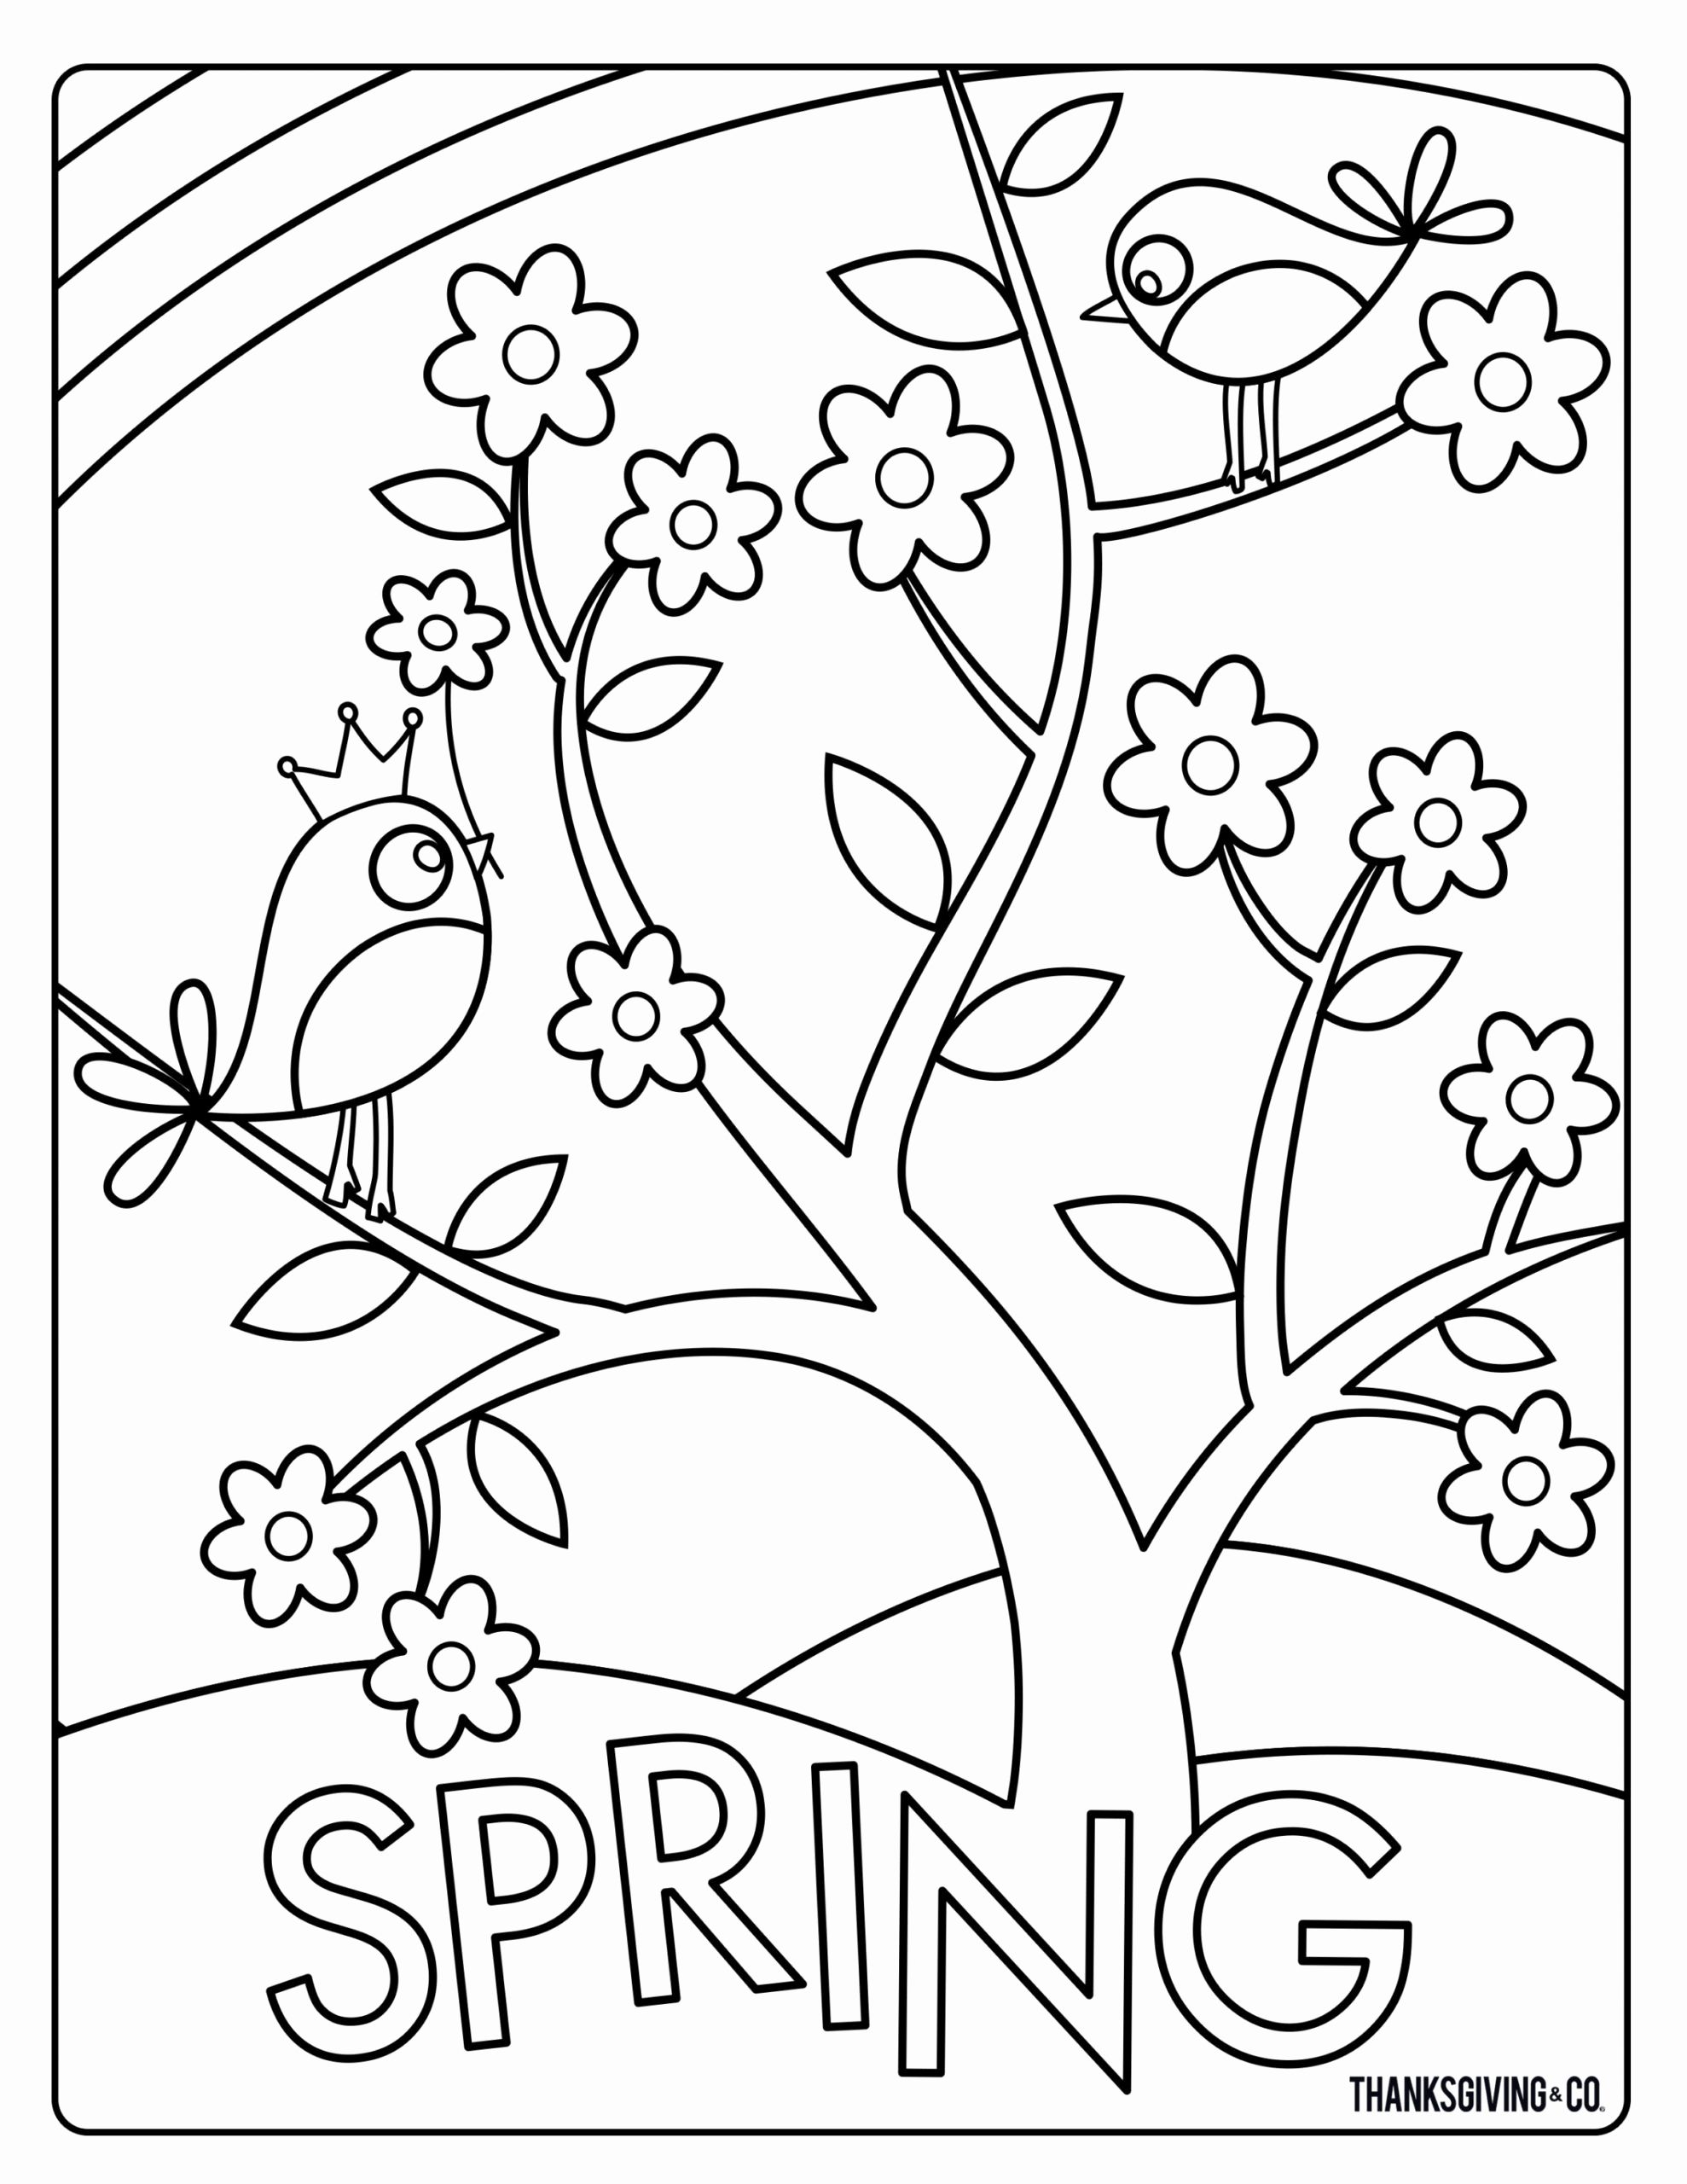 Rain And Flower Coloring Pages For Kids Spring Coloring Sheets Bird Coloring Pages Easter Coloring Pages